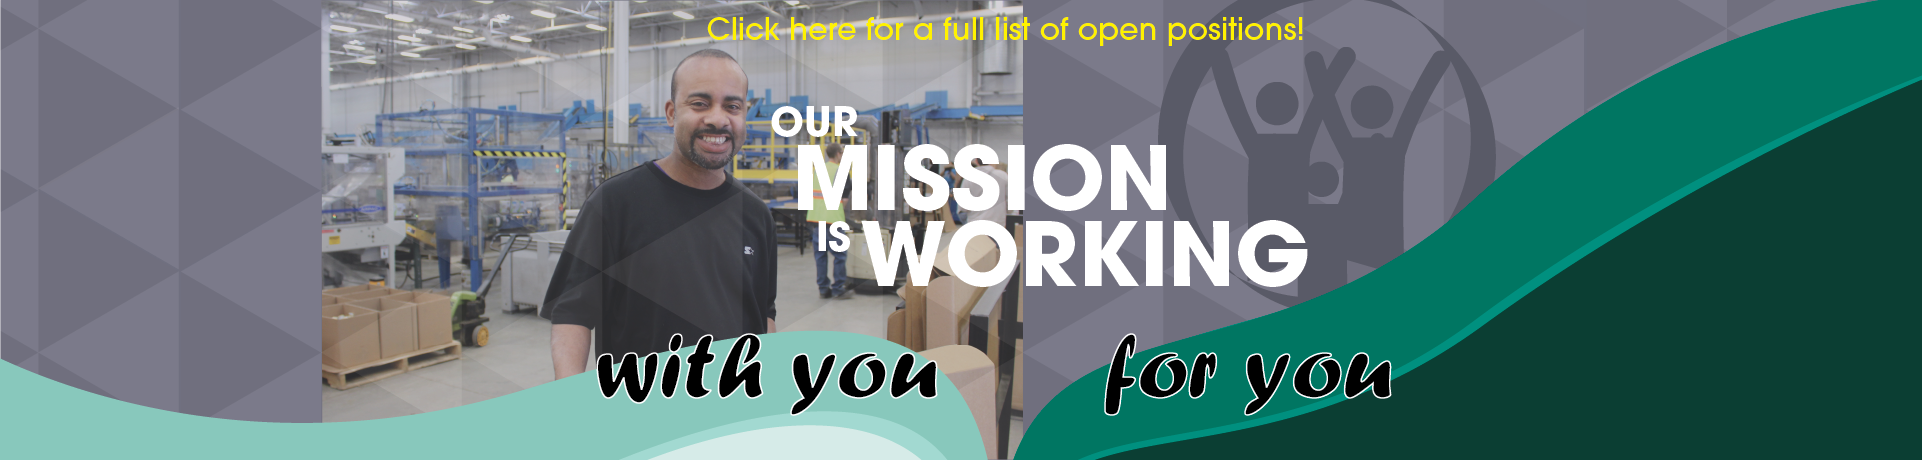 Our_Mission_is_Working_For_You_with_You_Banner